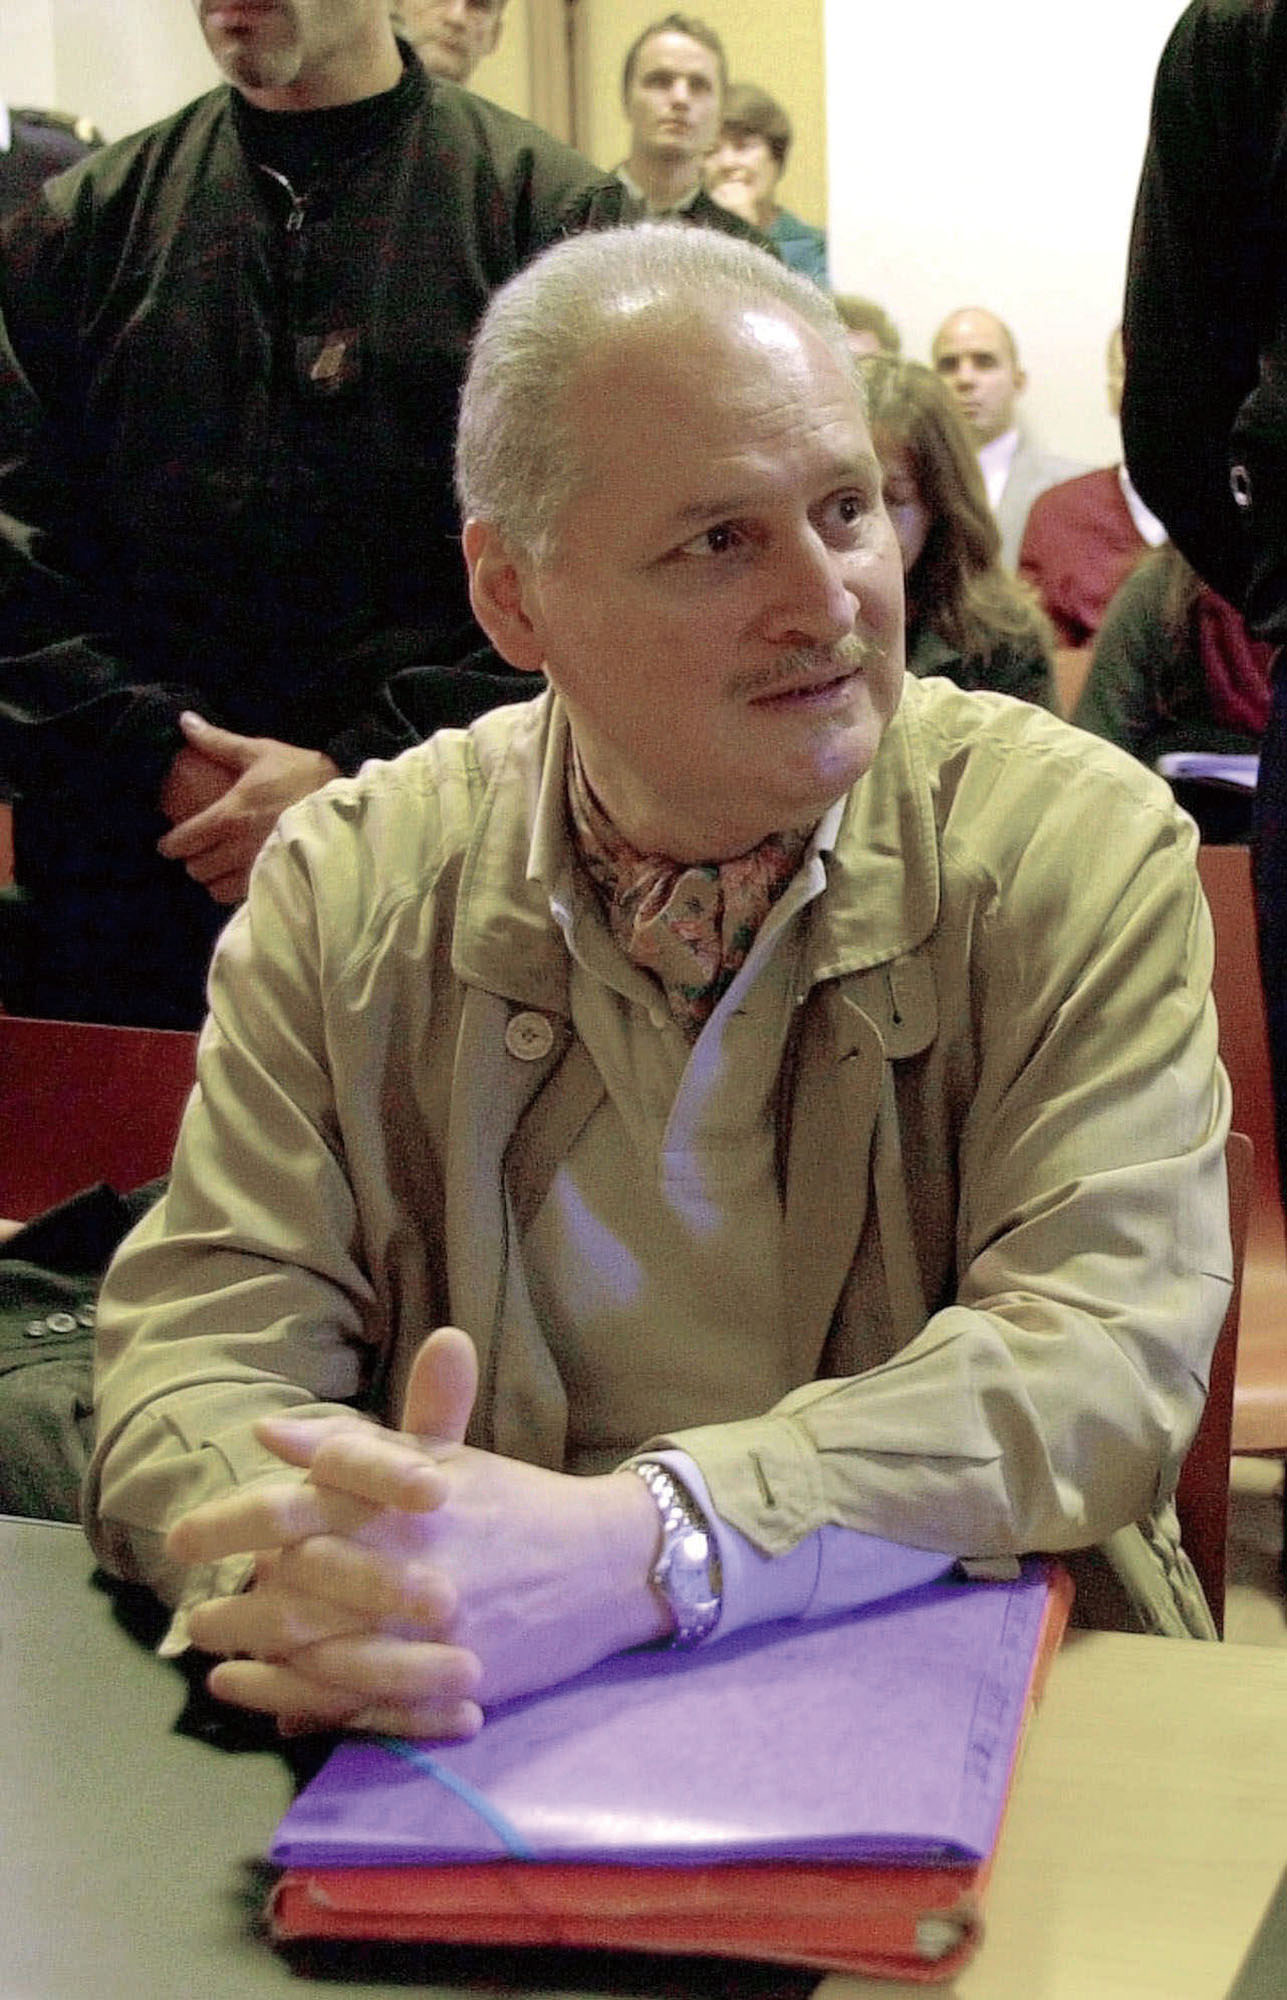 In this Tuesday, Nov. 28, 2000 file photo, Venezuelan international terrorist Carlos the Jackal whose real name is Ilich Ramirez Sanchez, sits in a Pa...